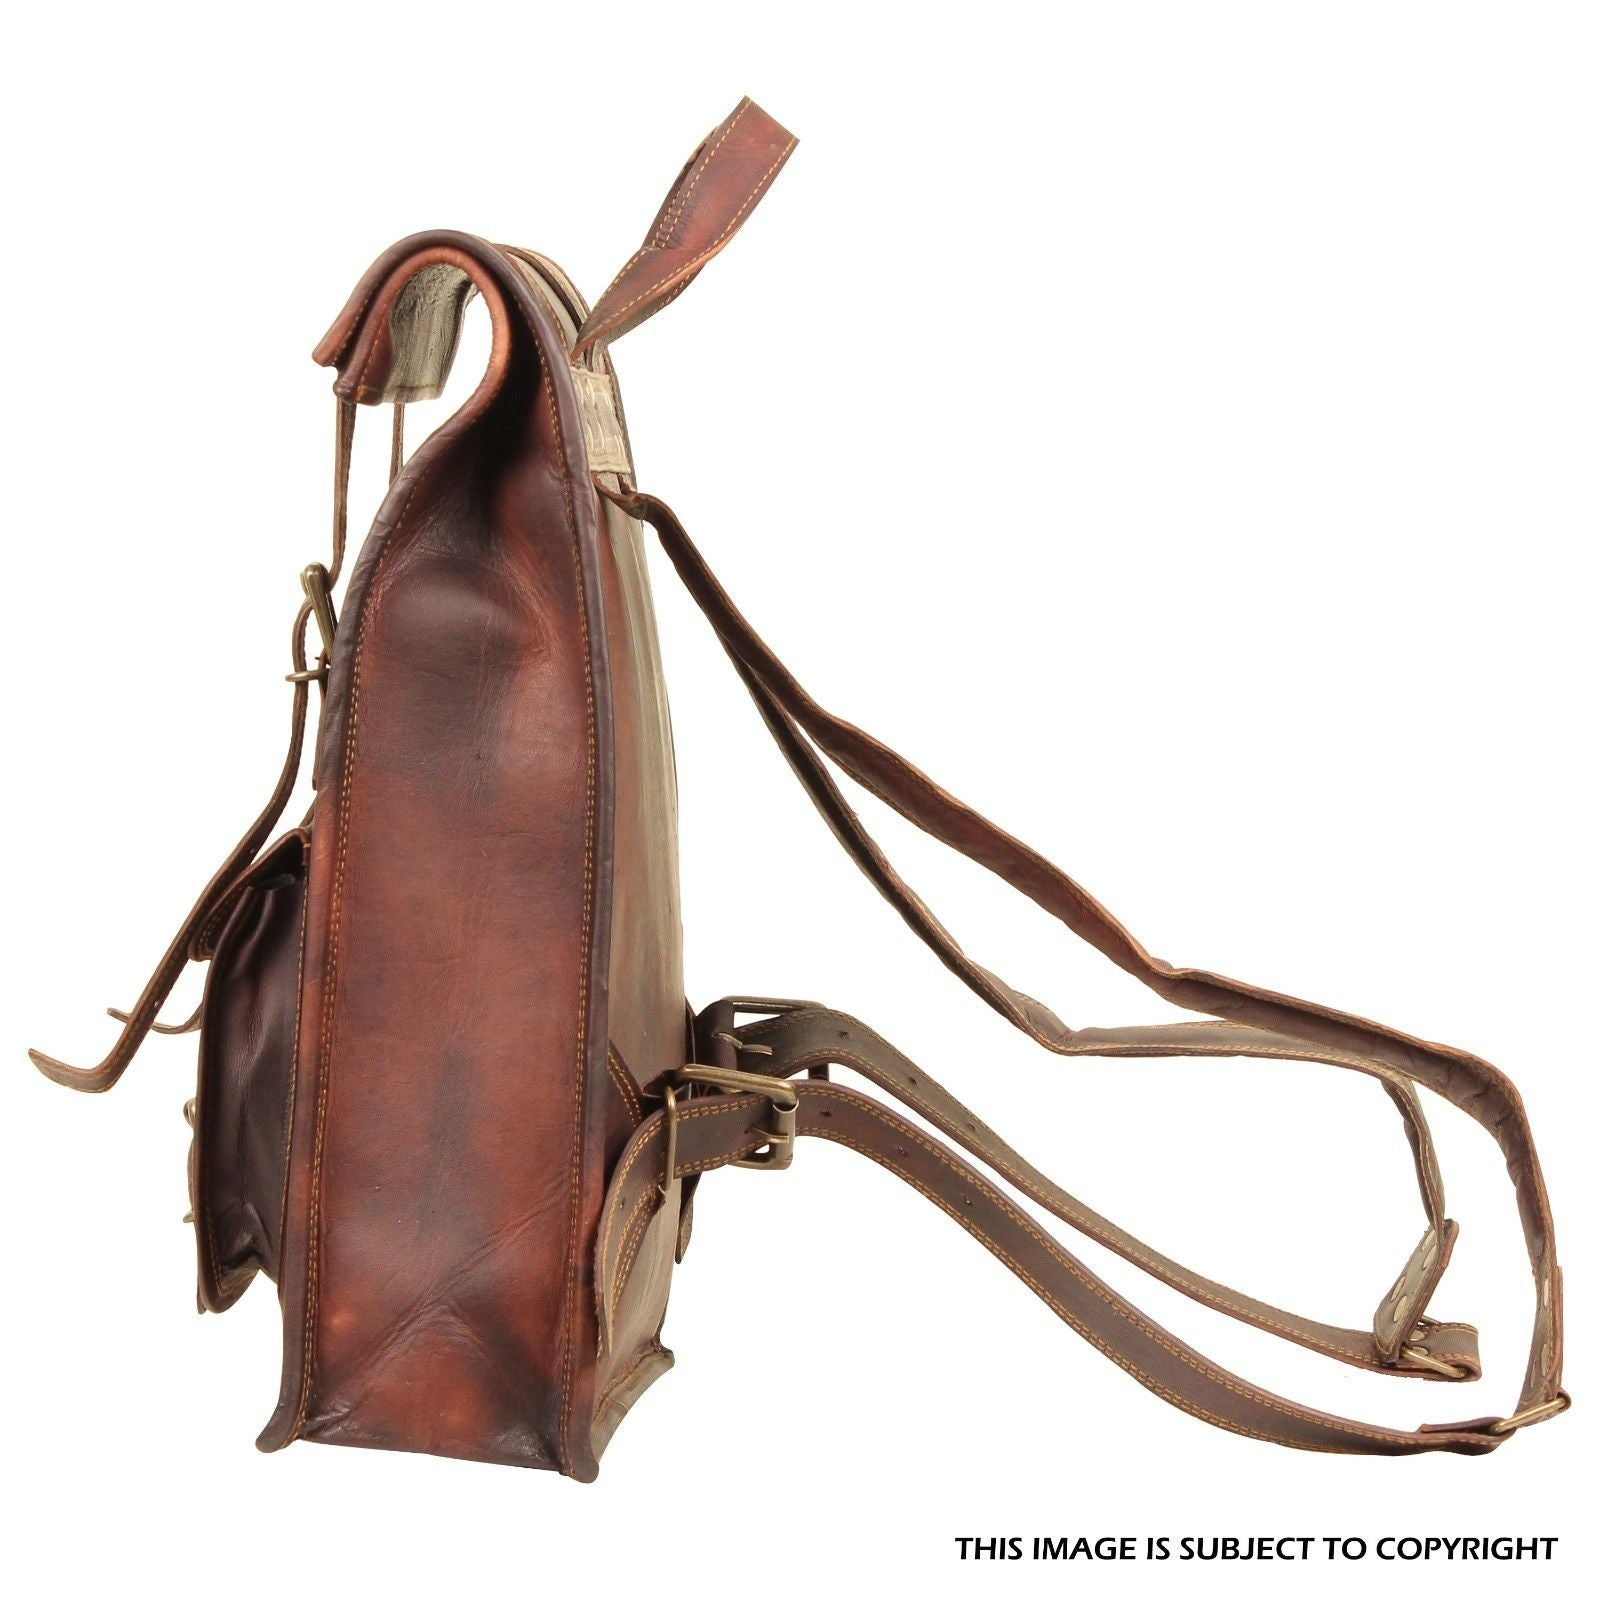 Leather Backpack Bag for travel Hiking college by hulsh